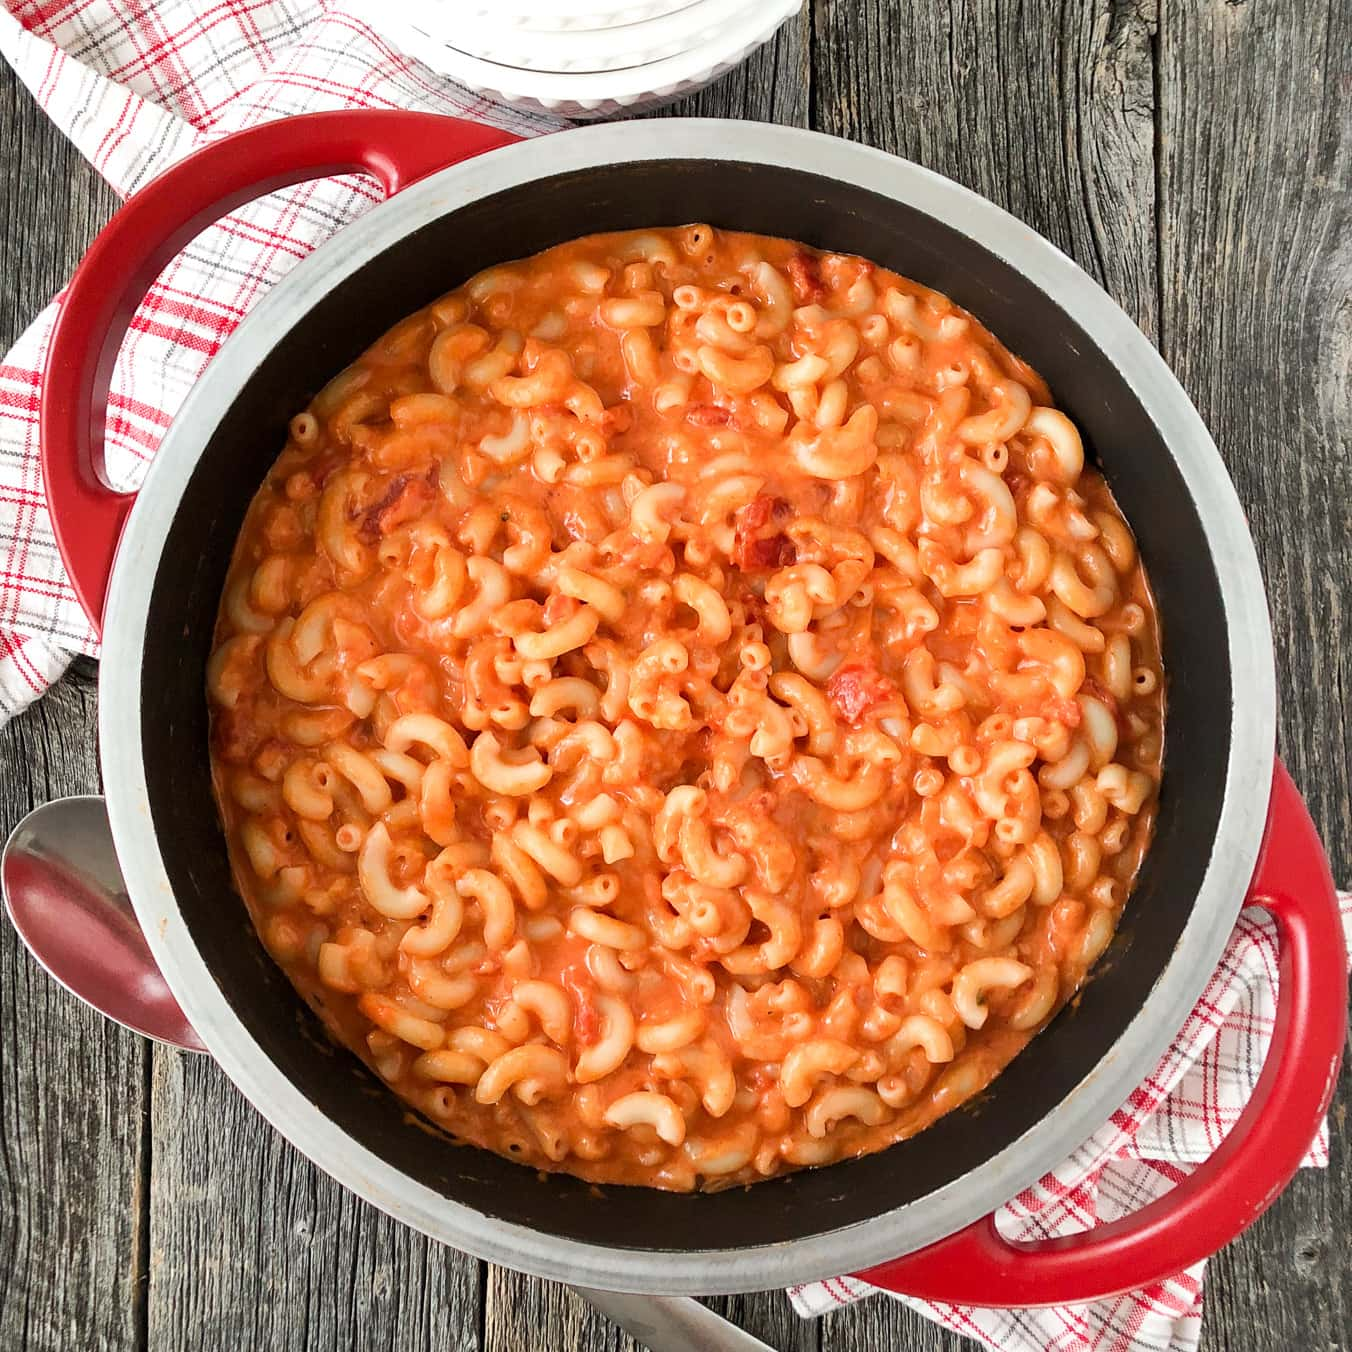 Simple Ways to Stretch Your Meals: Add drained canned tomatoes to mac and cheese.